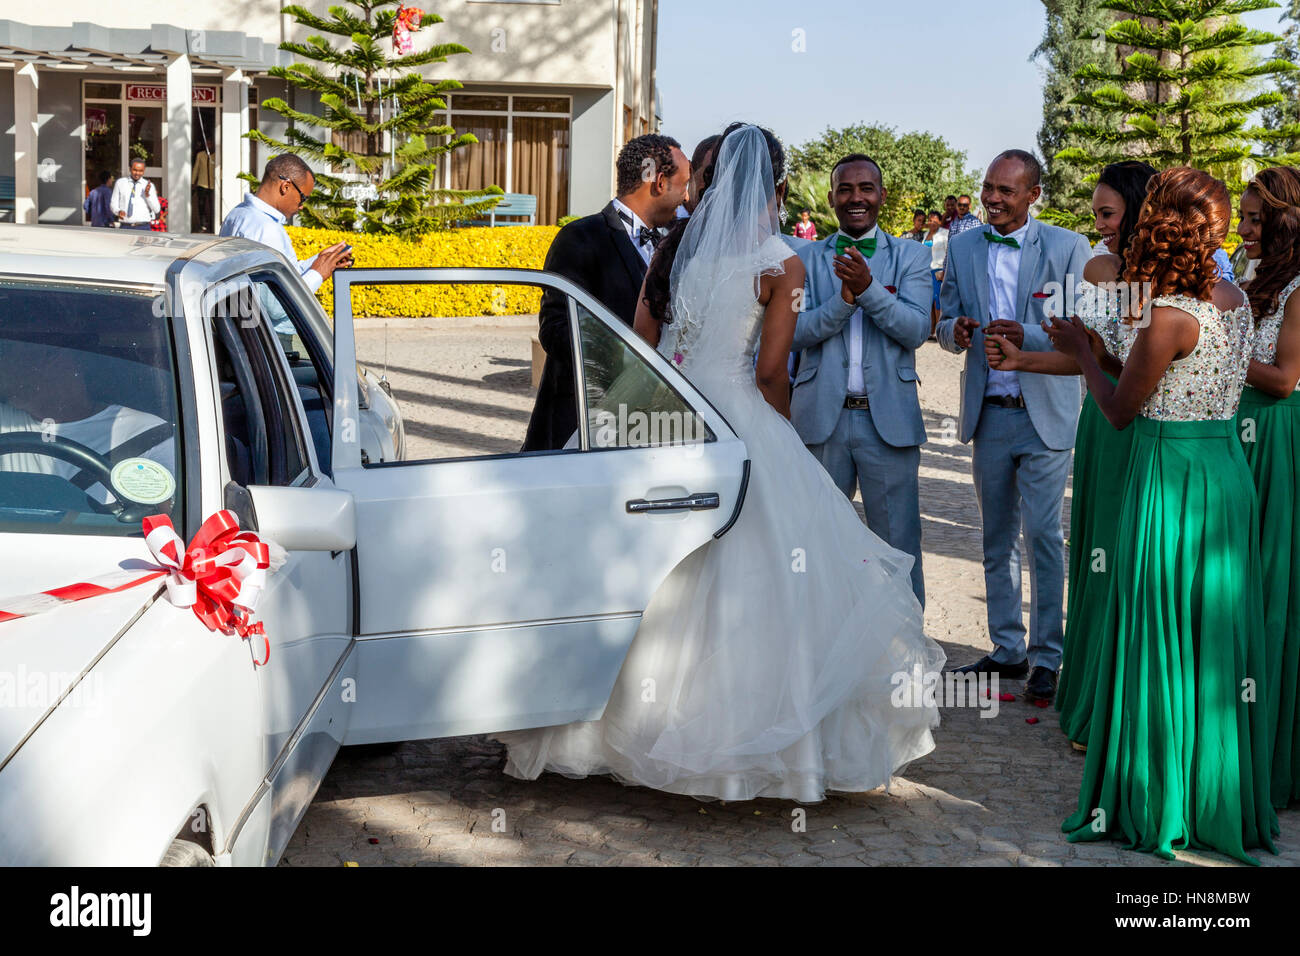 A Wedding Party, The Bride and Bridegroom Arrive, Lake Ziway, Ziway, Ethiopia Stock Photo